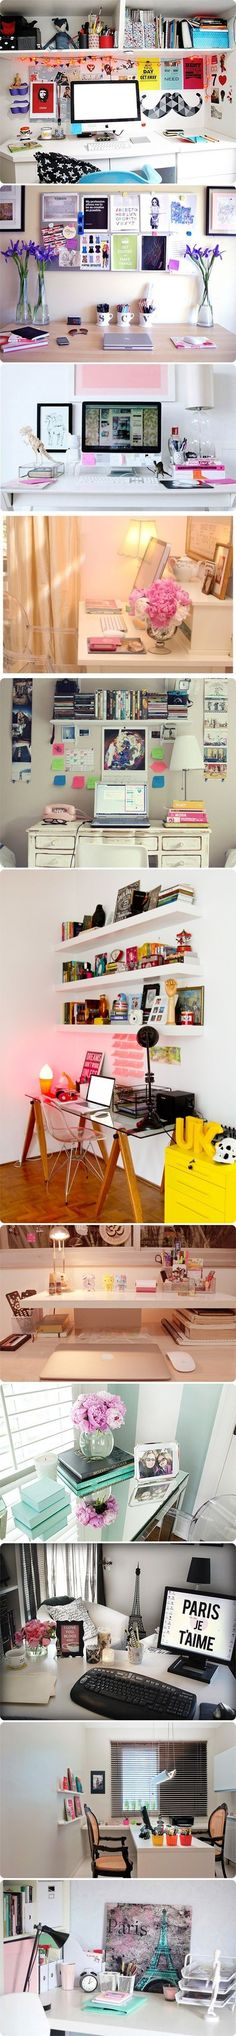 To Decorate Your Home Office? Find Out How! home office decor office decor 18 Desk Inspiration, Decoration Inspiration, Desk Inspo, Uni Room, Roomspiration, Room Goals, Desk Organization, Office Decor, Office Ideas